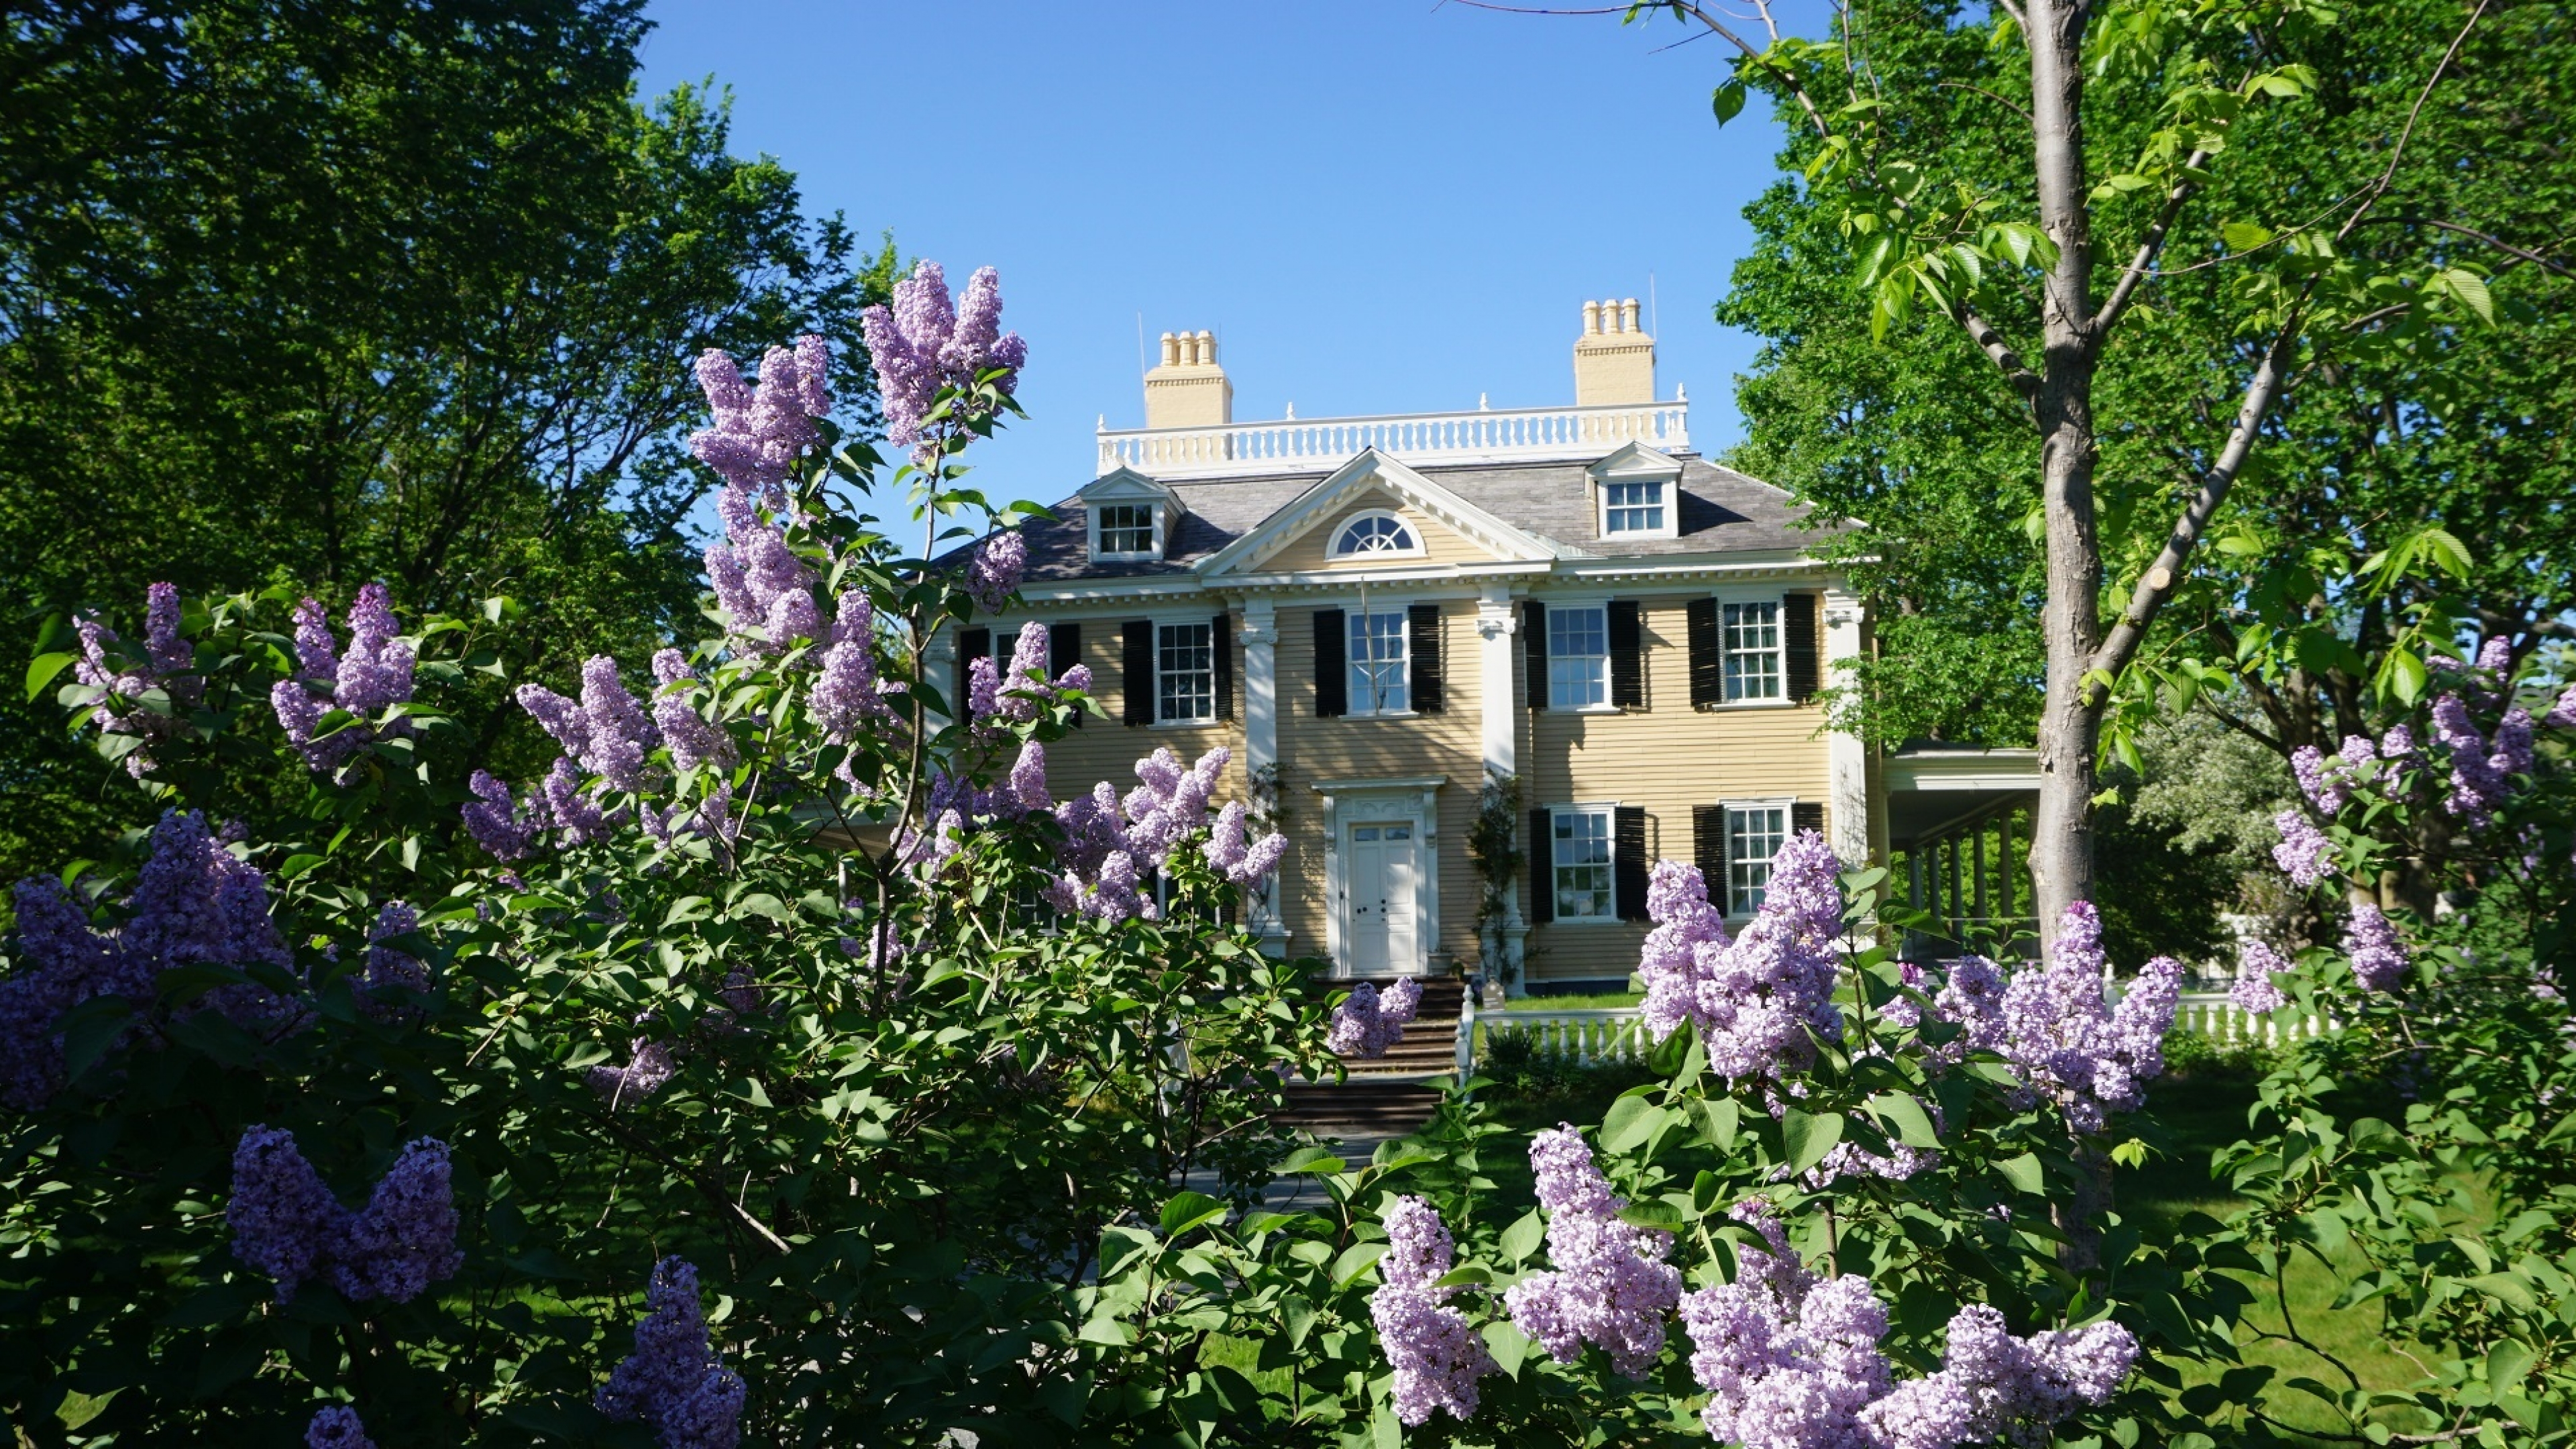 Longfellow House in spring with lilacs blooming